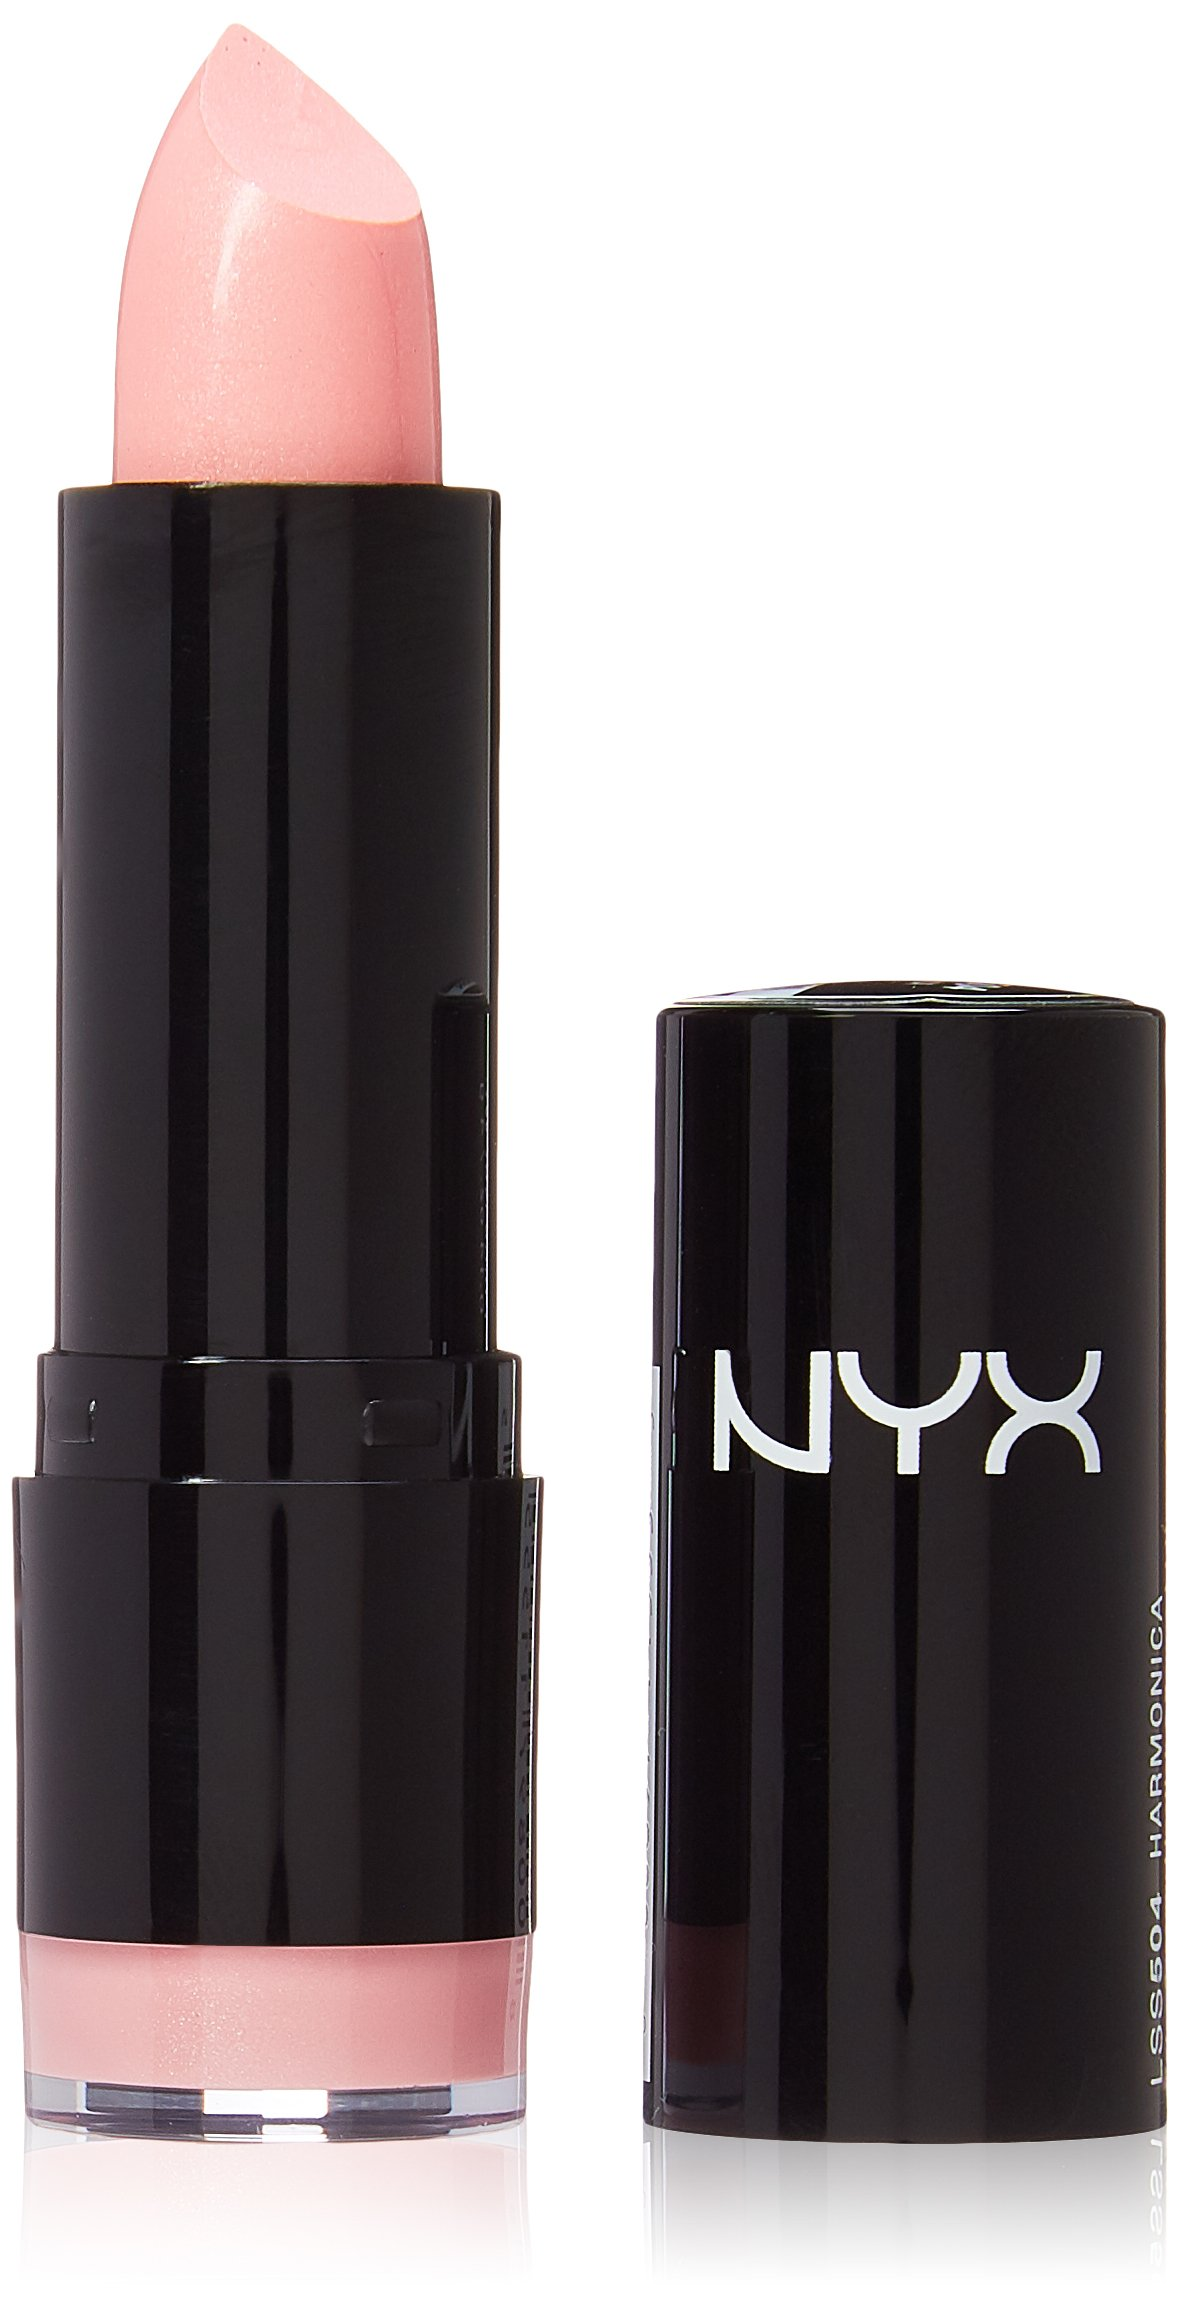 Nyx Lip Lingerie Makes A Great Dupe For The Kylie Jenner: Amazon.com : NYX Matte Lipstick, Audrey : Beauty